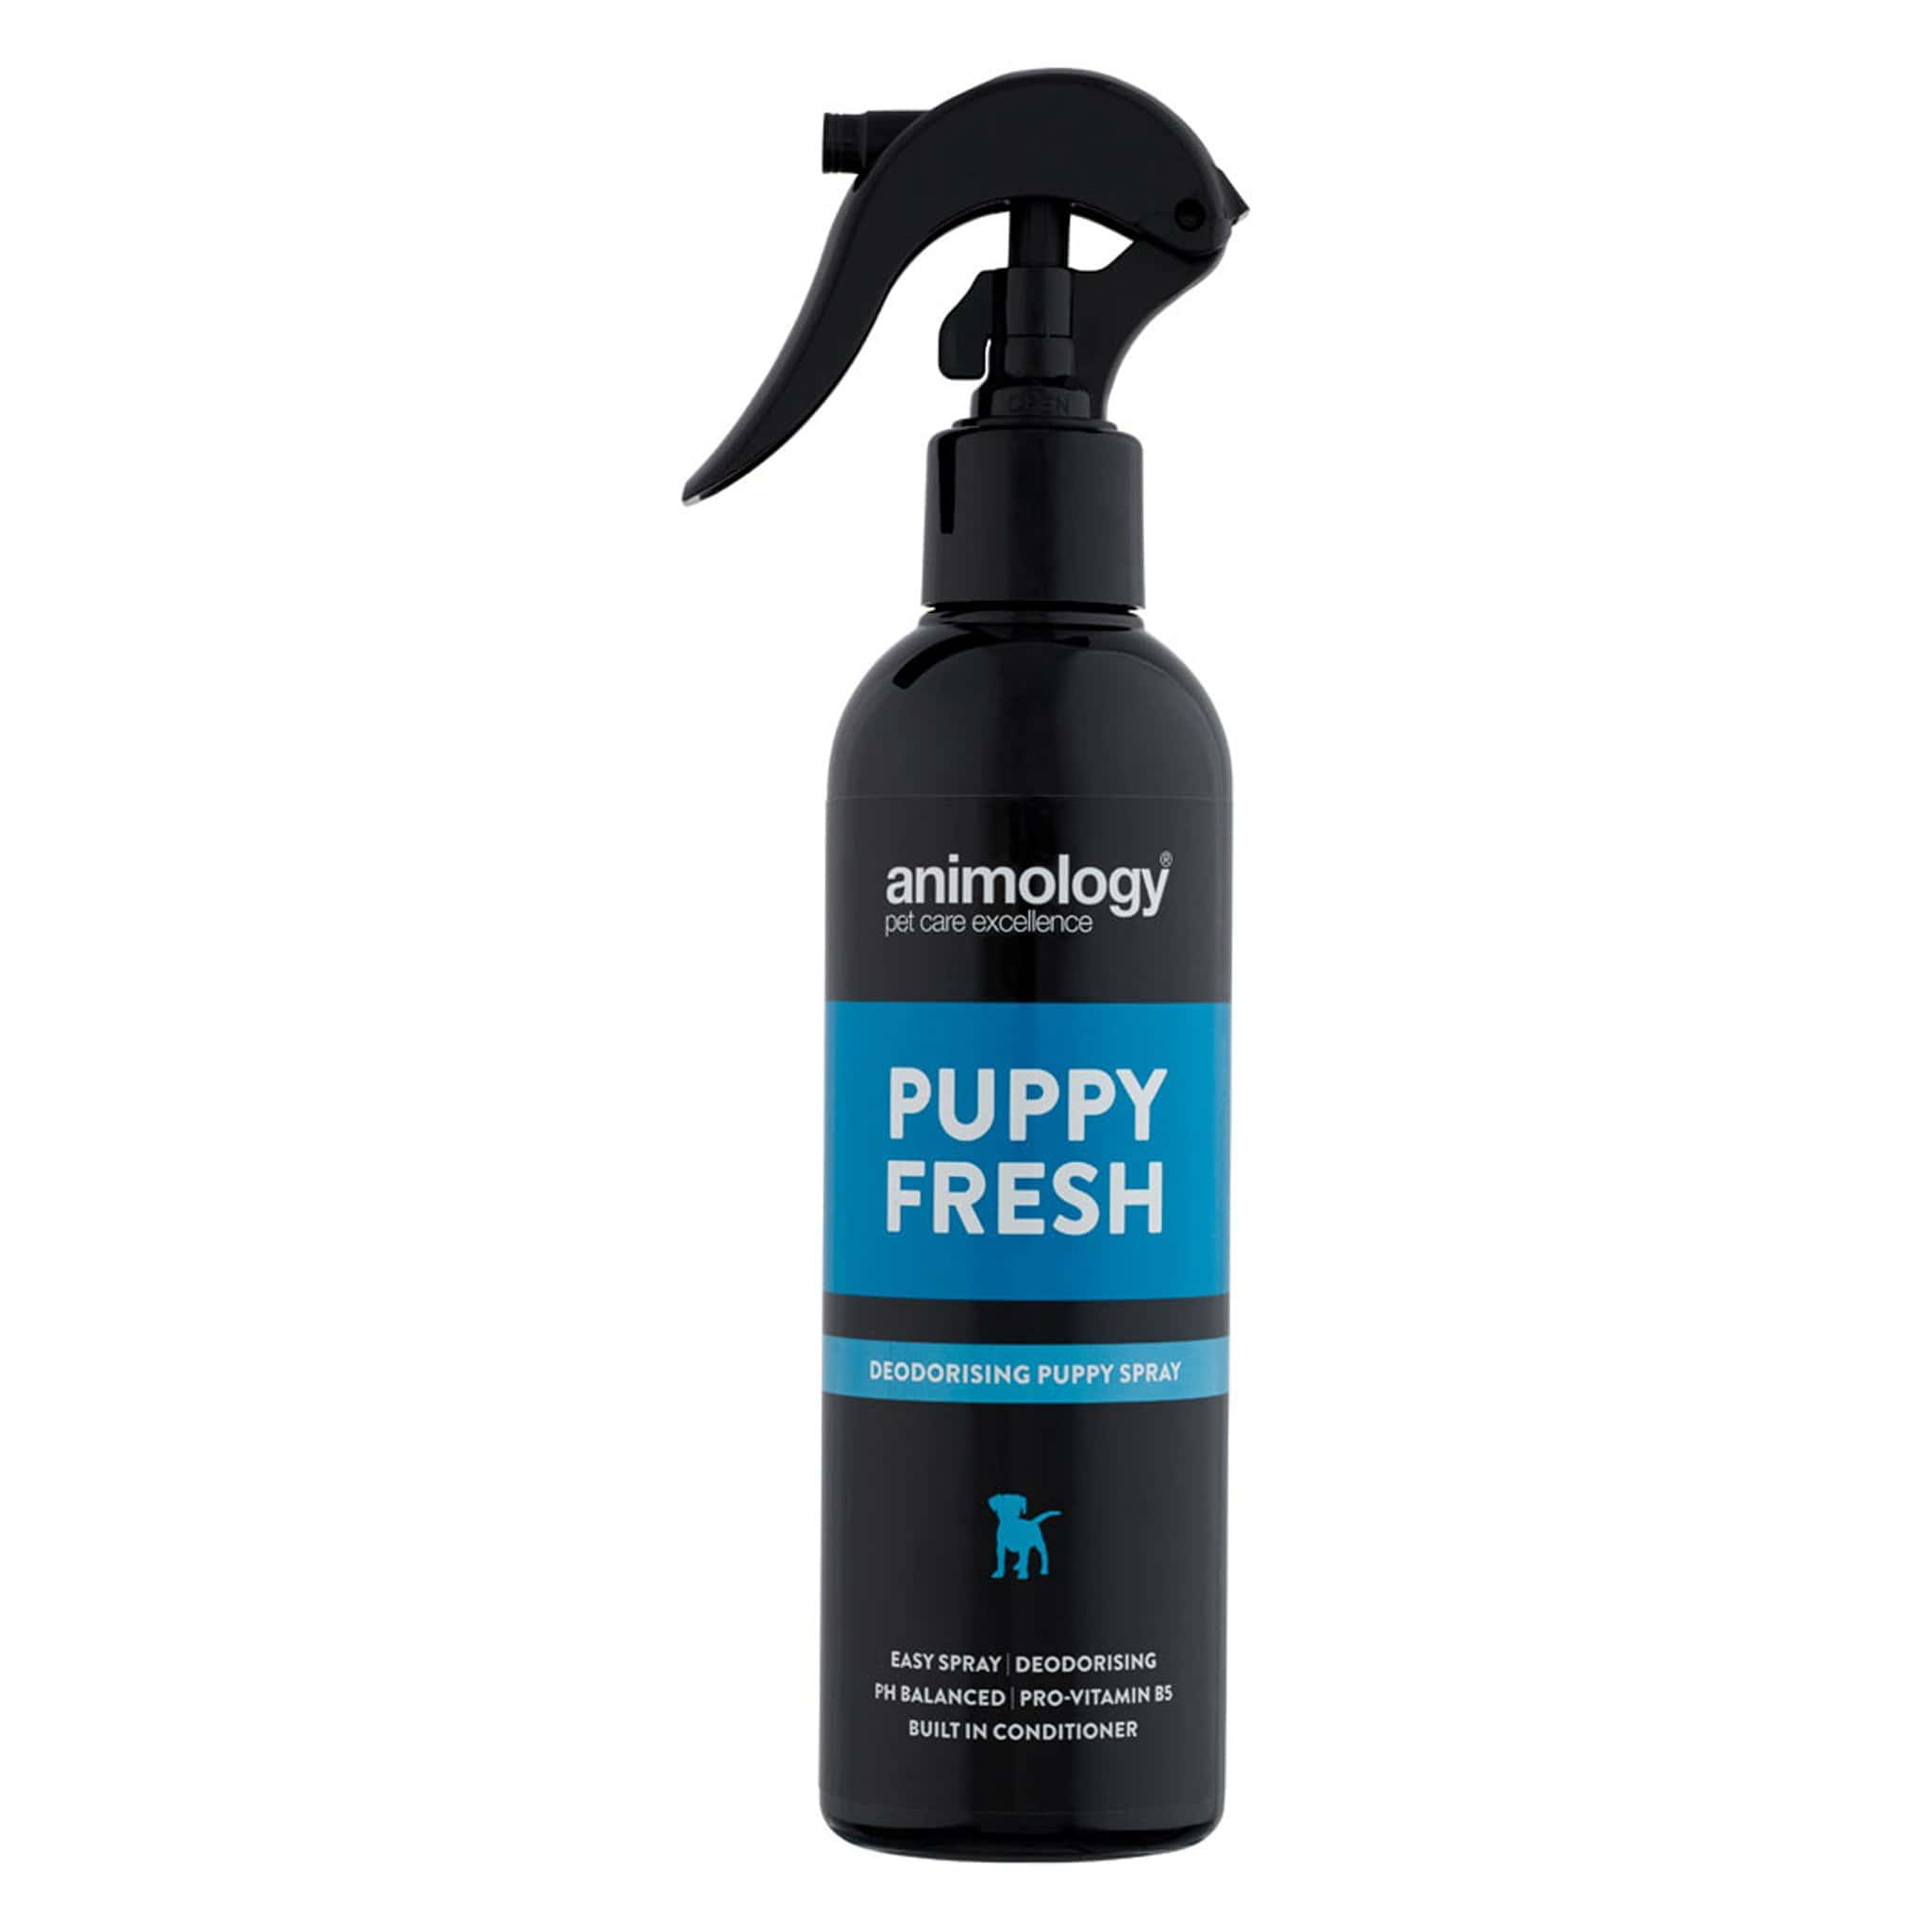 Animology Puppy Fresh Deodorising Puppy Spray 5797.